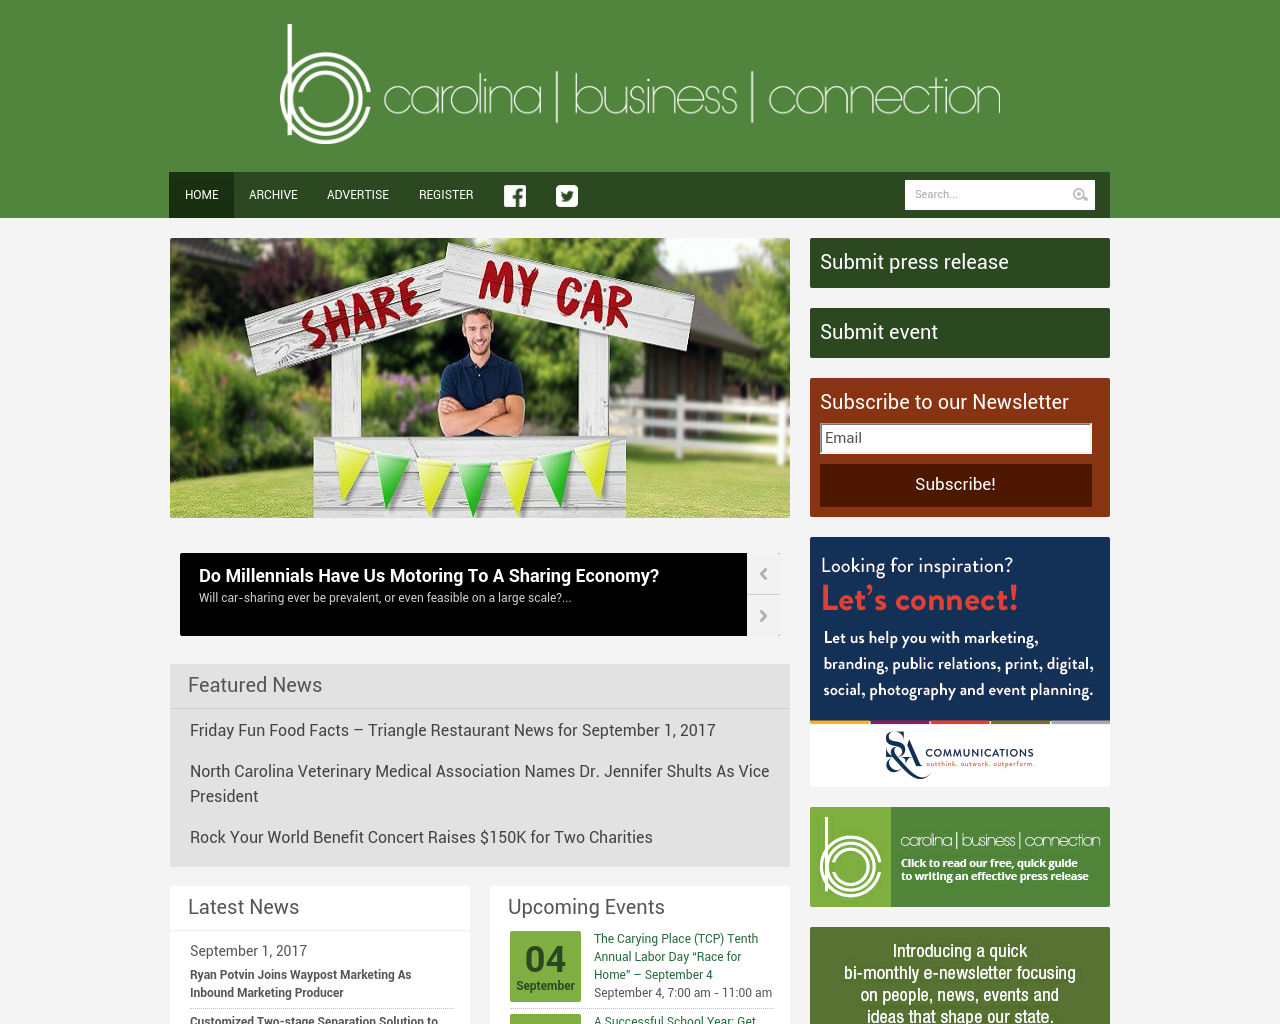 Carolina-Business-Connection-Advertising-Reviews-Pricing